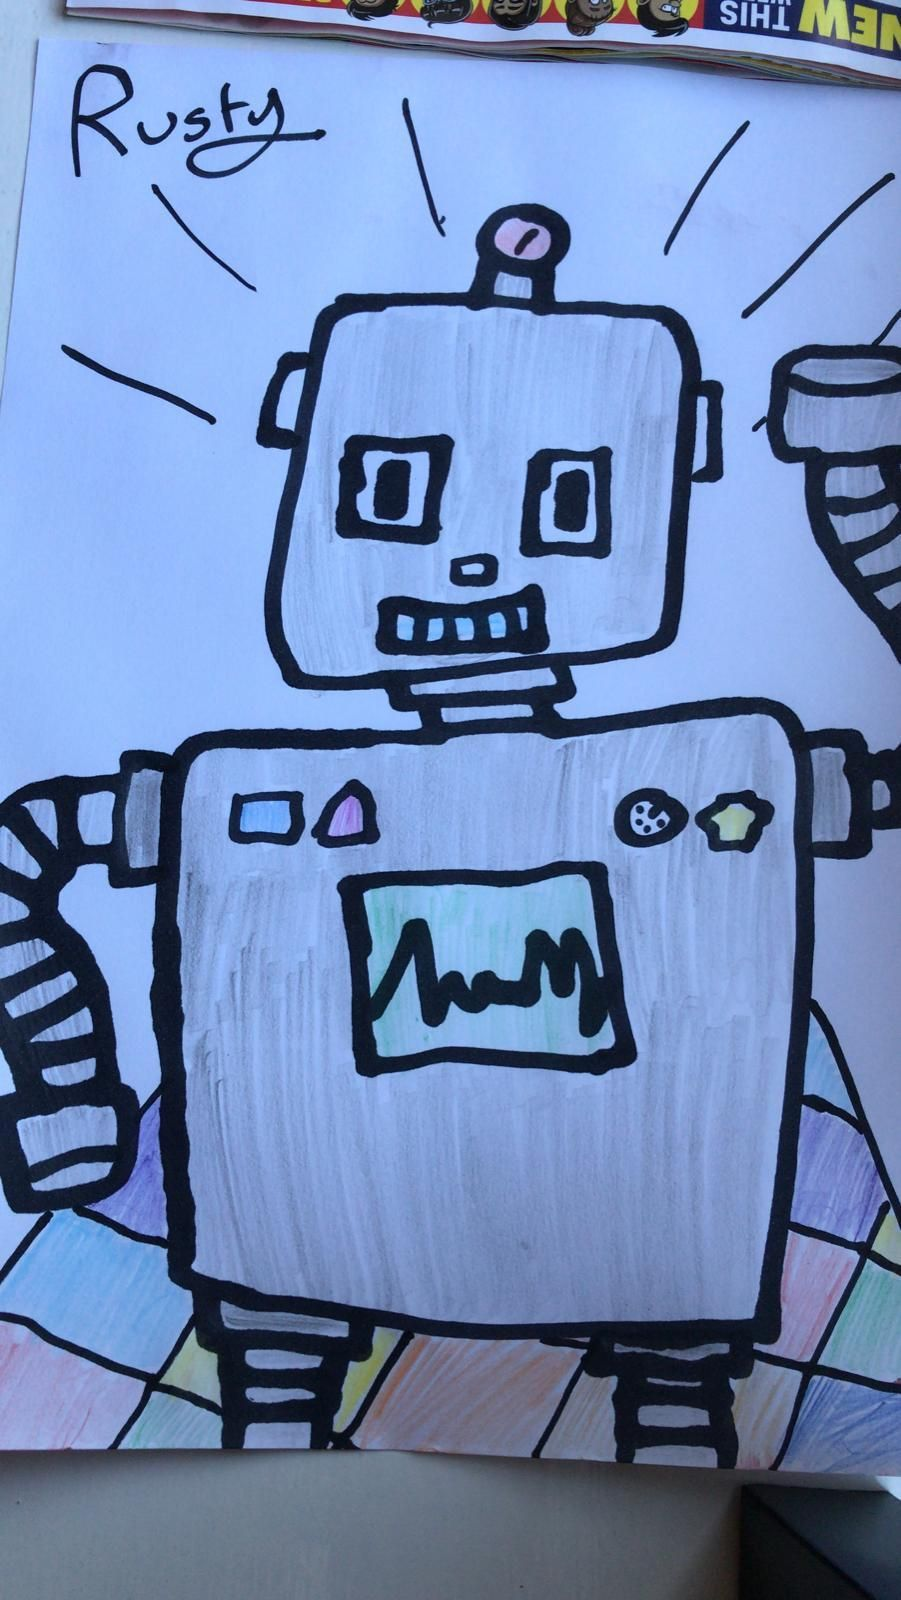 Disco robots - image 4 - student project